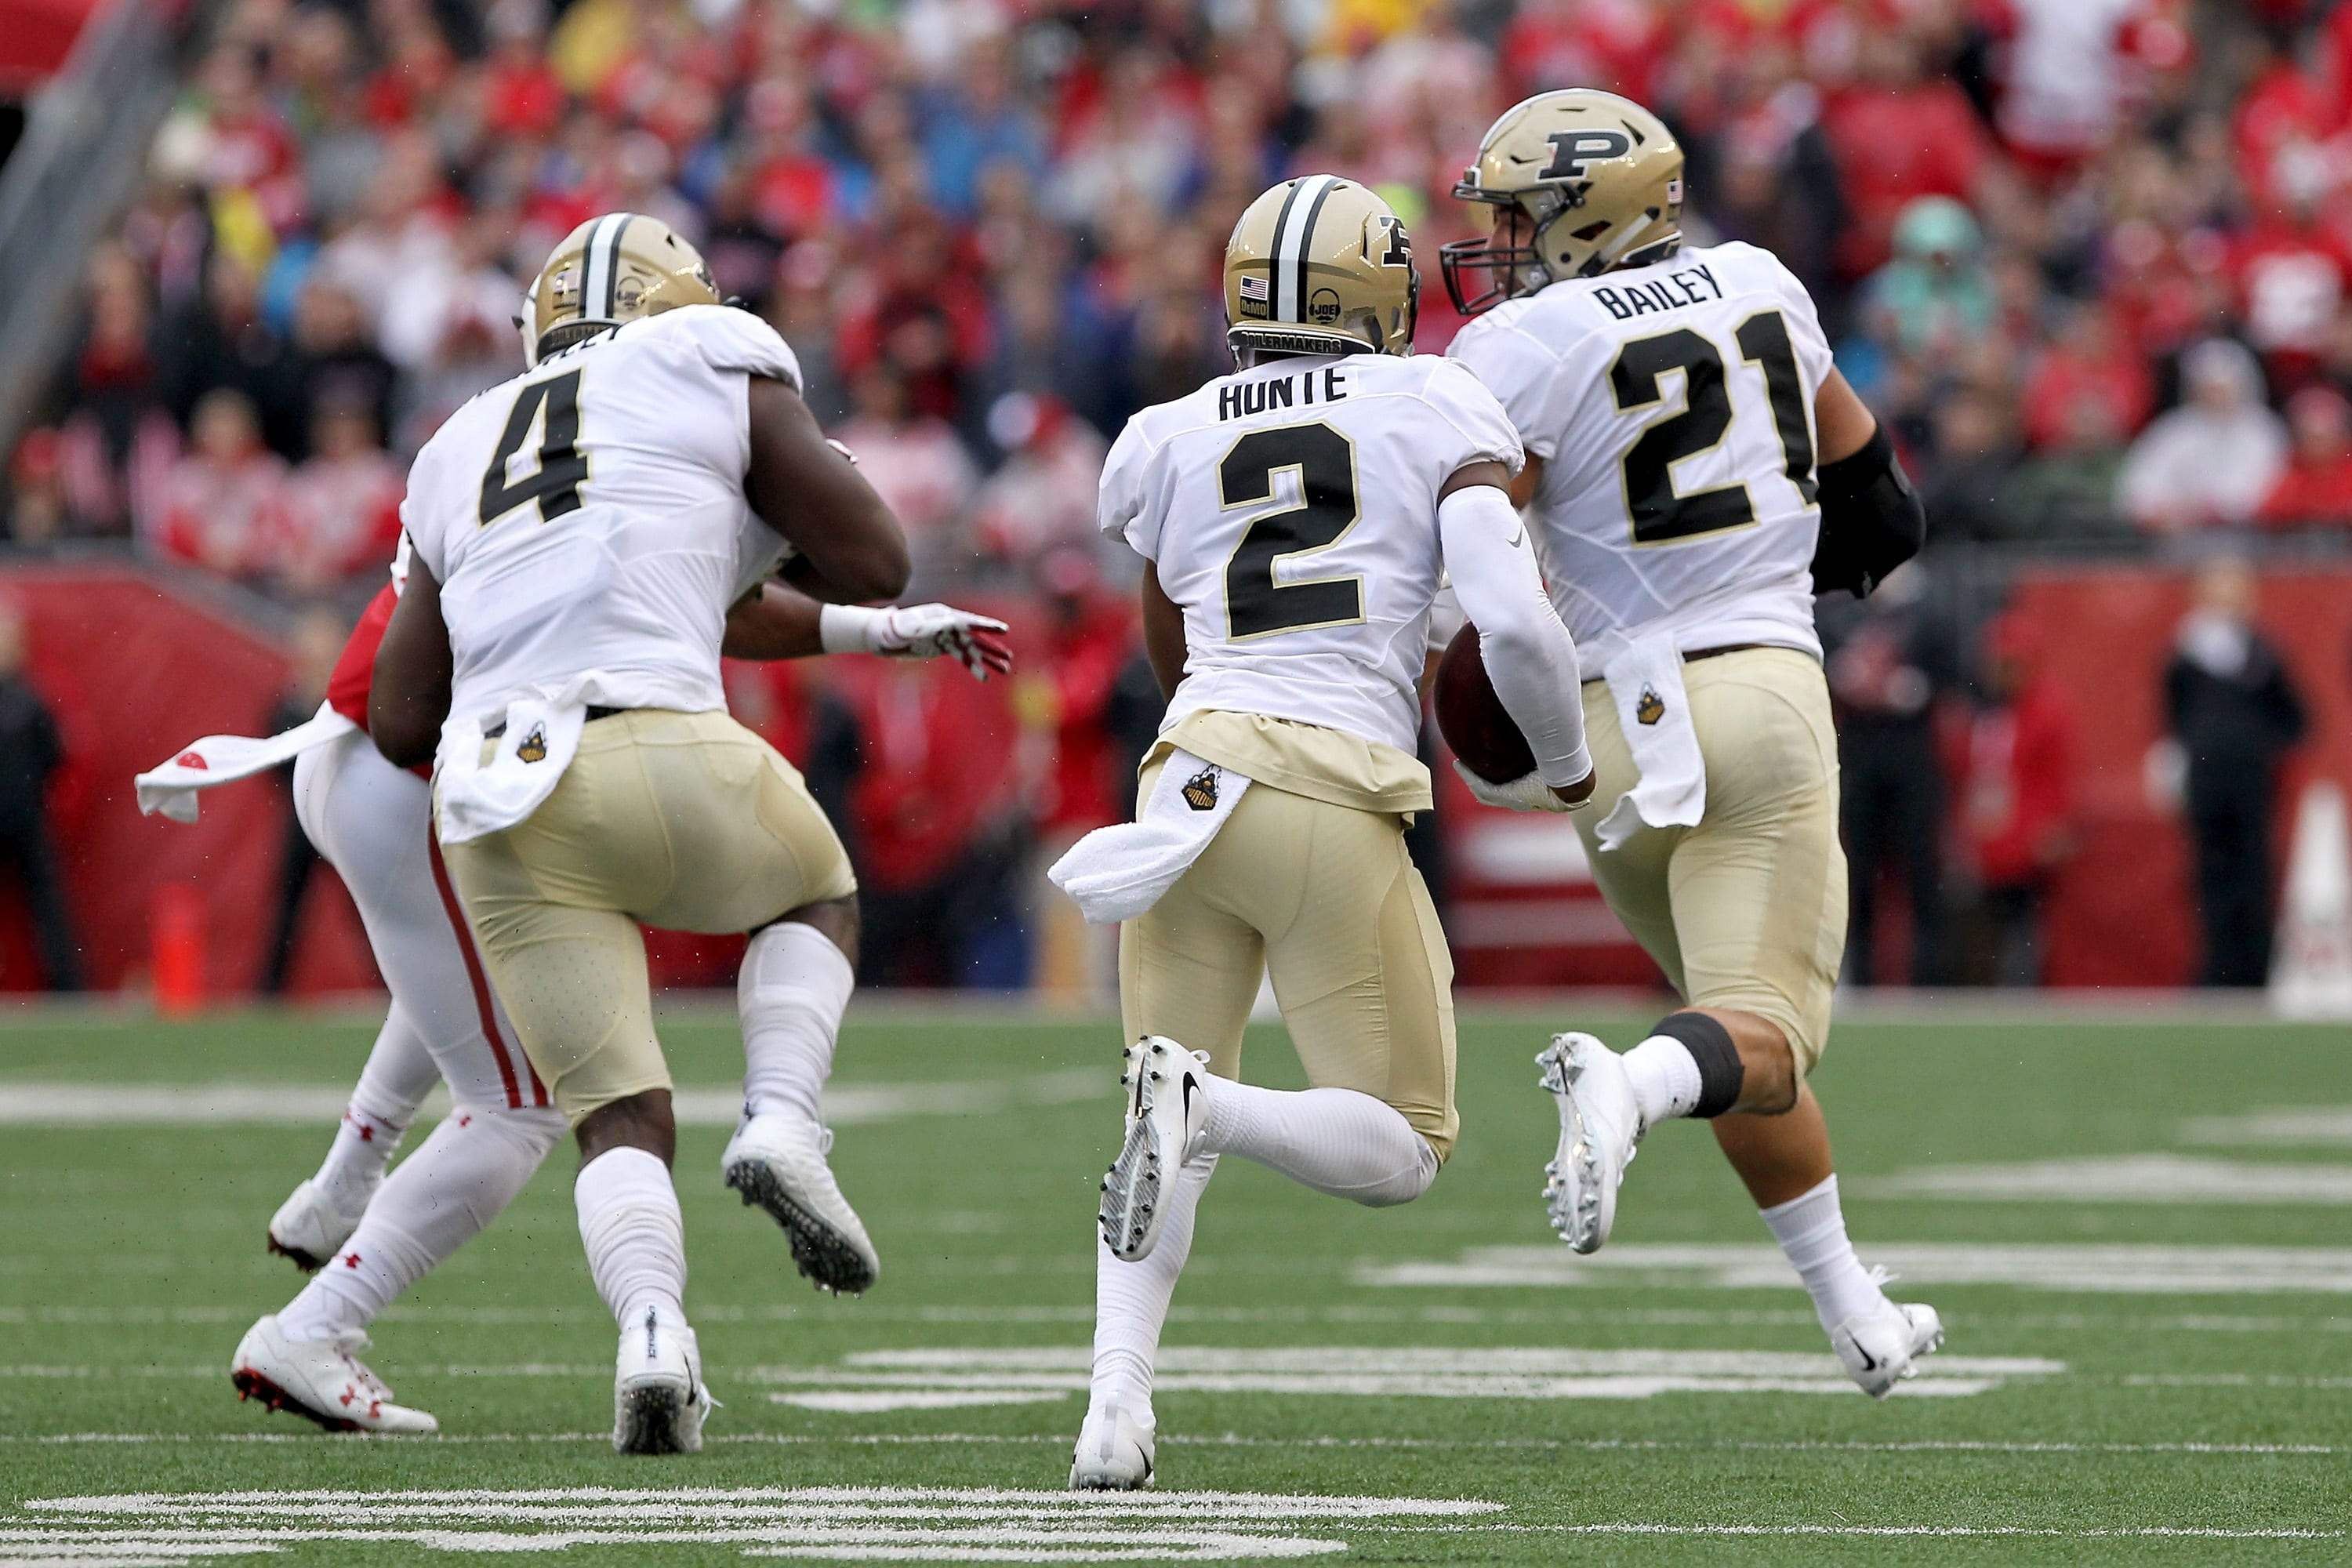 Wisconsin Football: 3 takeaways from Badgers' win over ...